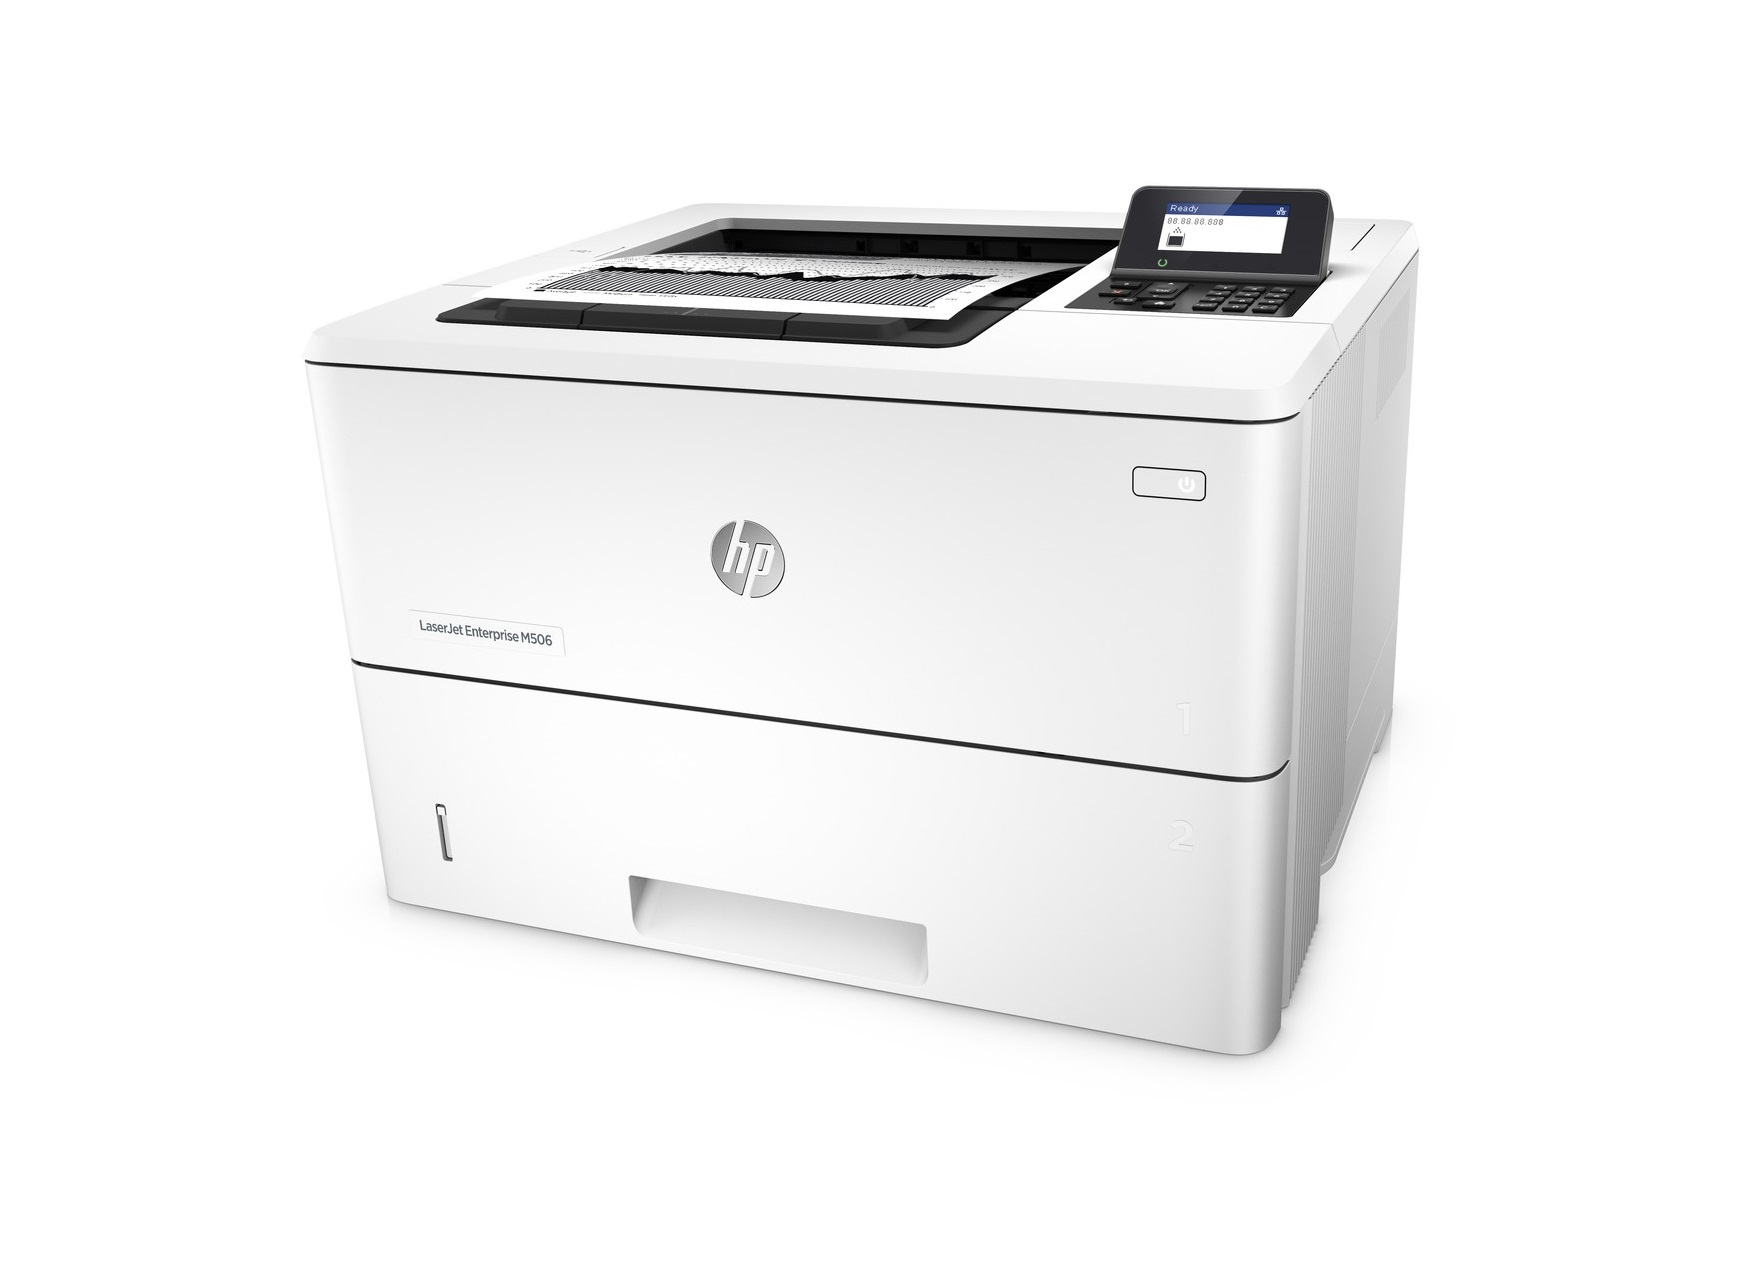 hp laserjet enterprise m506 parts diagrams rh laserpros com